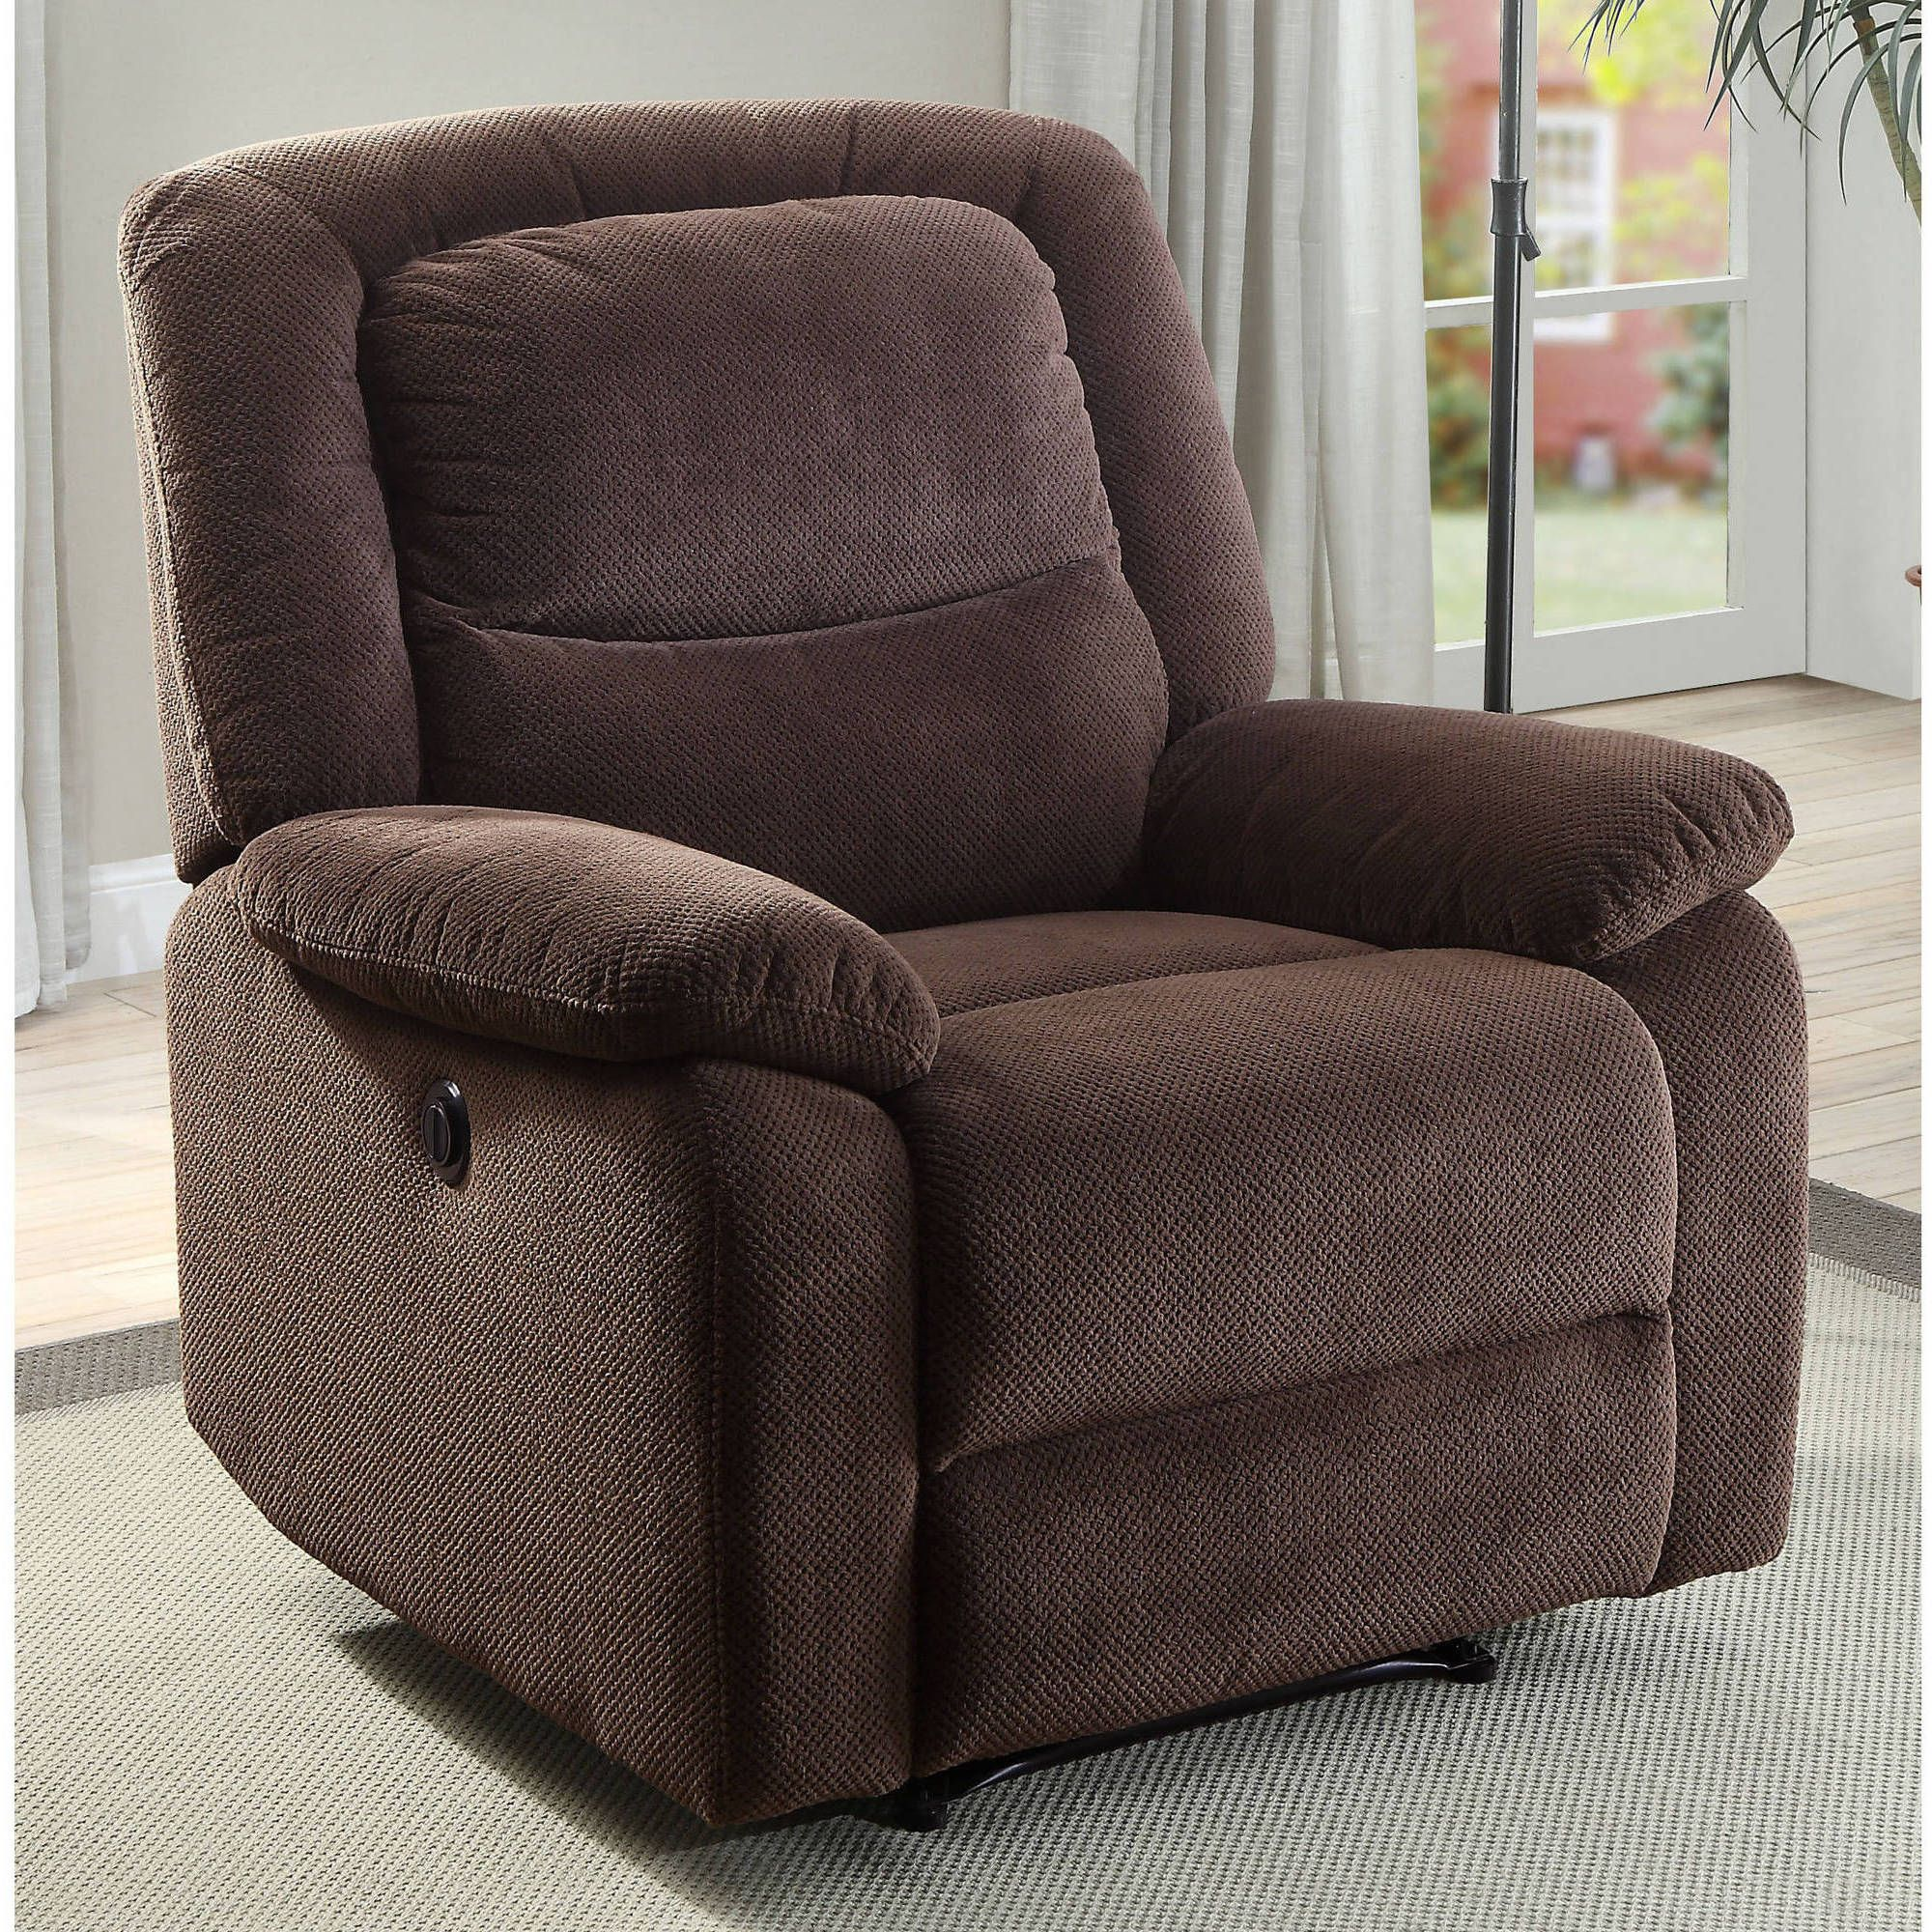 Home In 2020 Recliner Chair Power Recliners Recliner